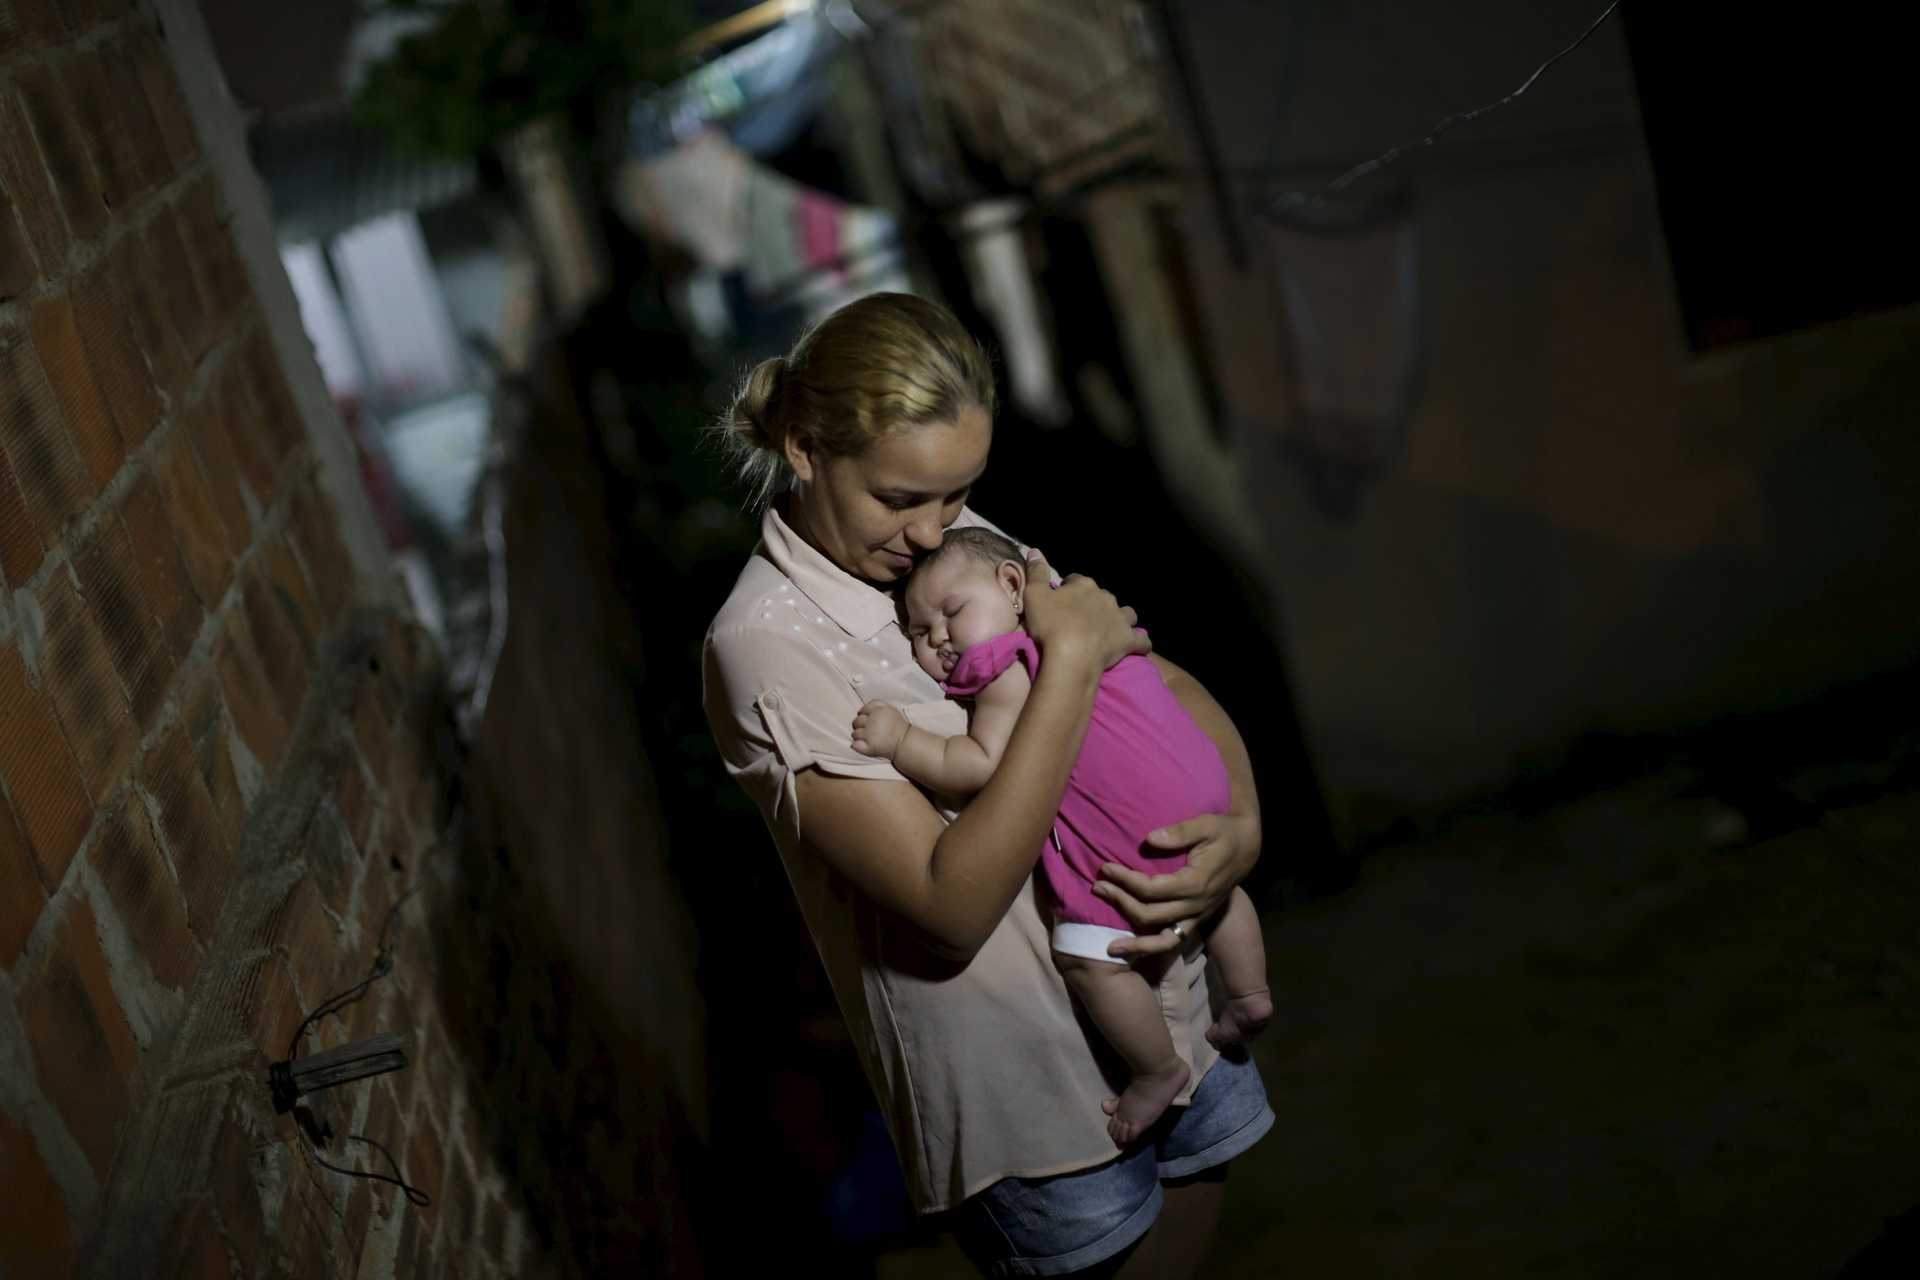 Gleyce Kelly embraces her daughter Maria Geovana, who has microcephaly, in Recife